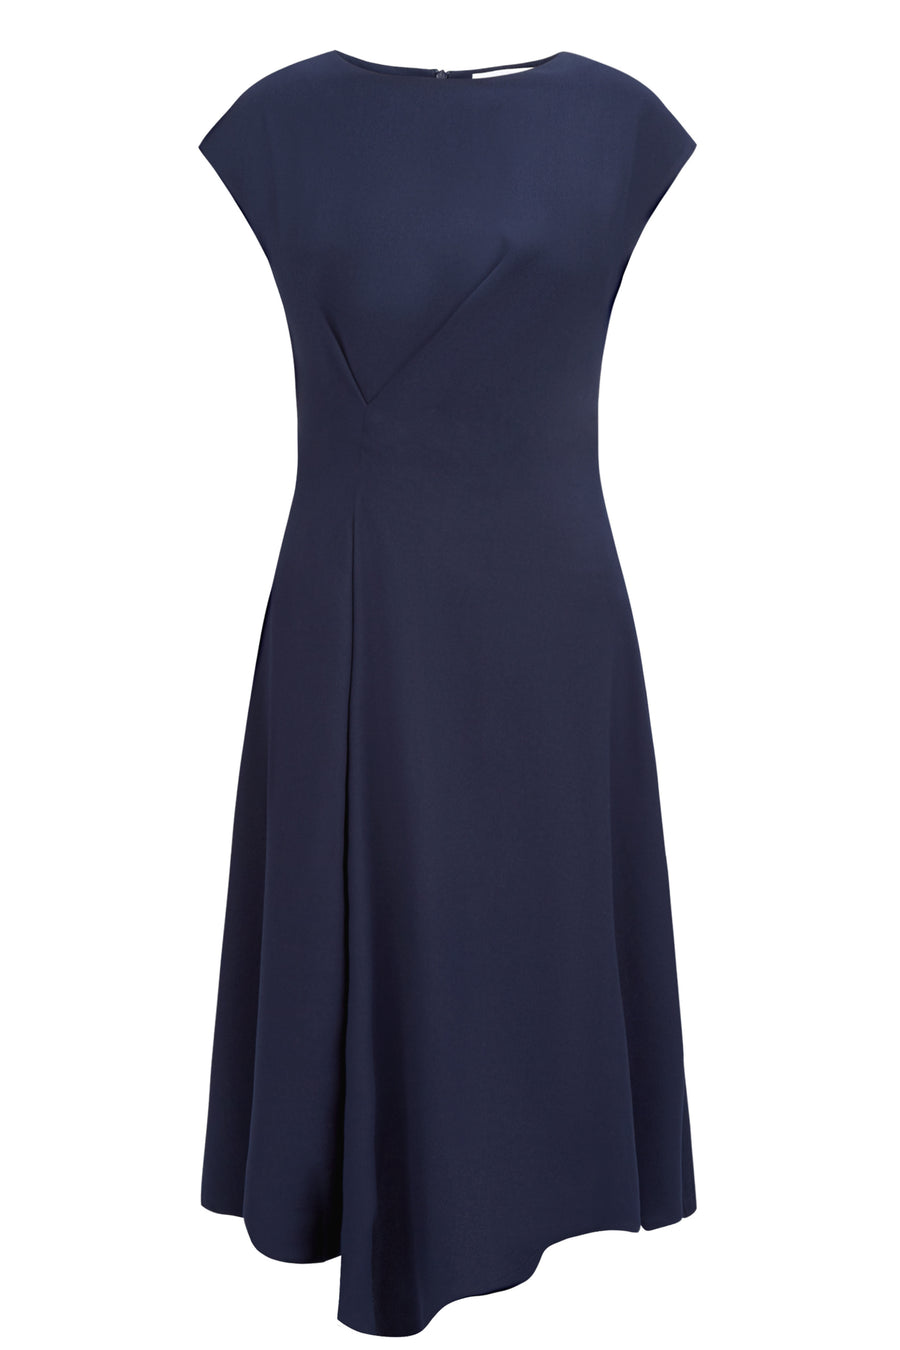 Arlington Navy Dress